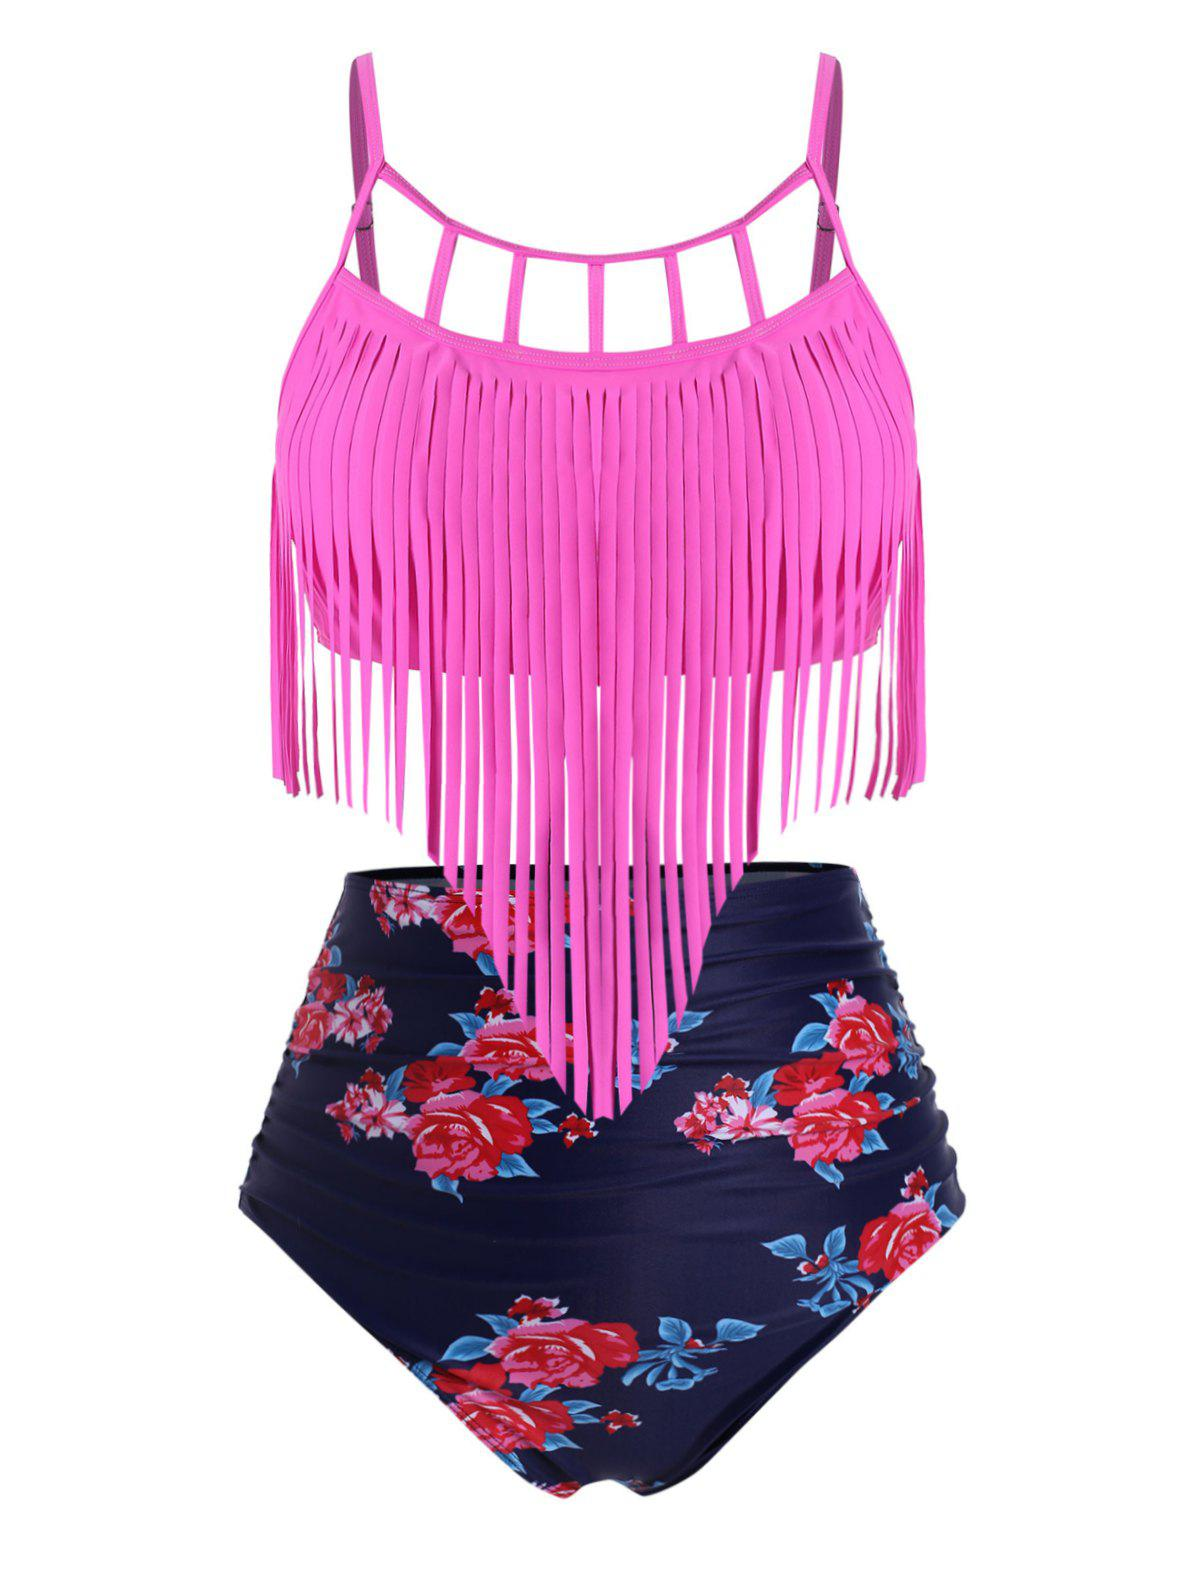 Fringed Floral Ruched High Waisted Plus Size Tankini Swimsuit - ROSE RED 3X